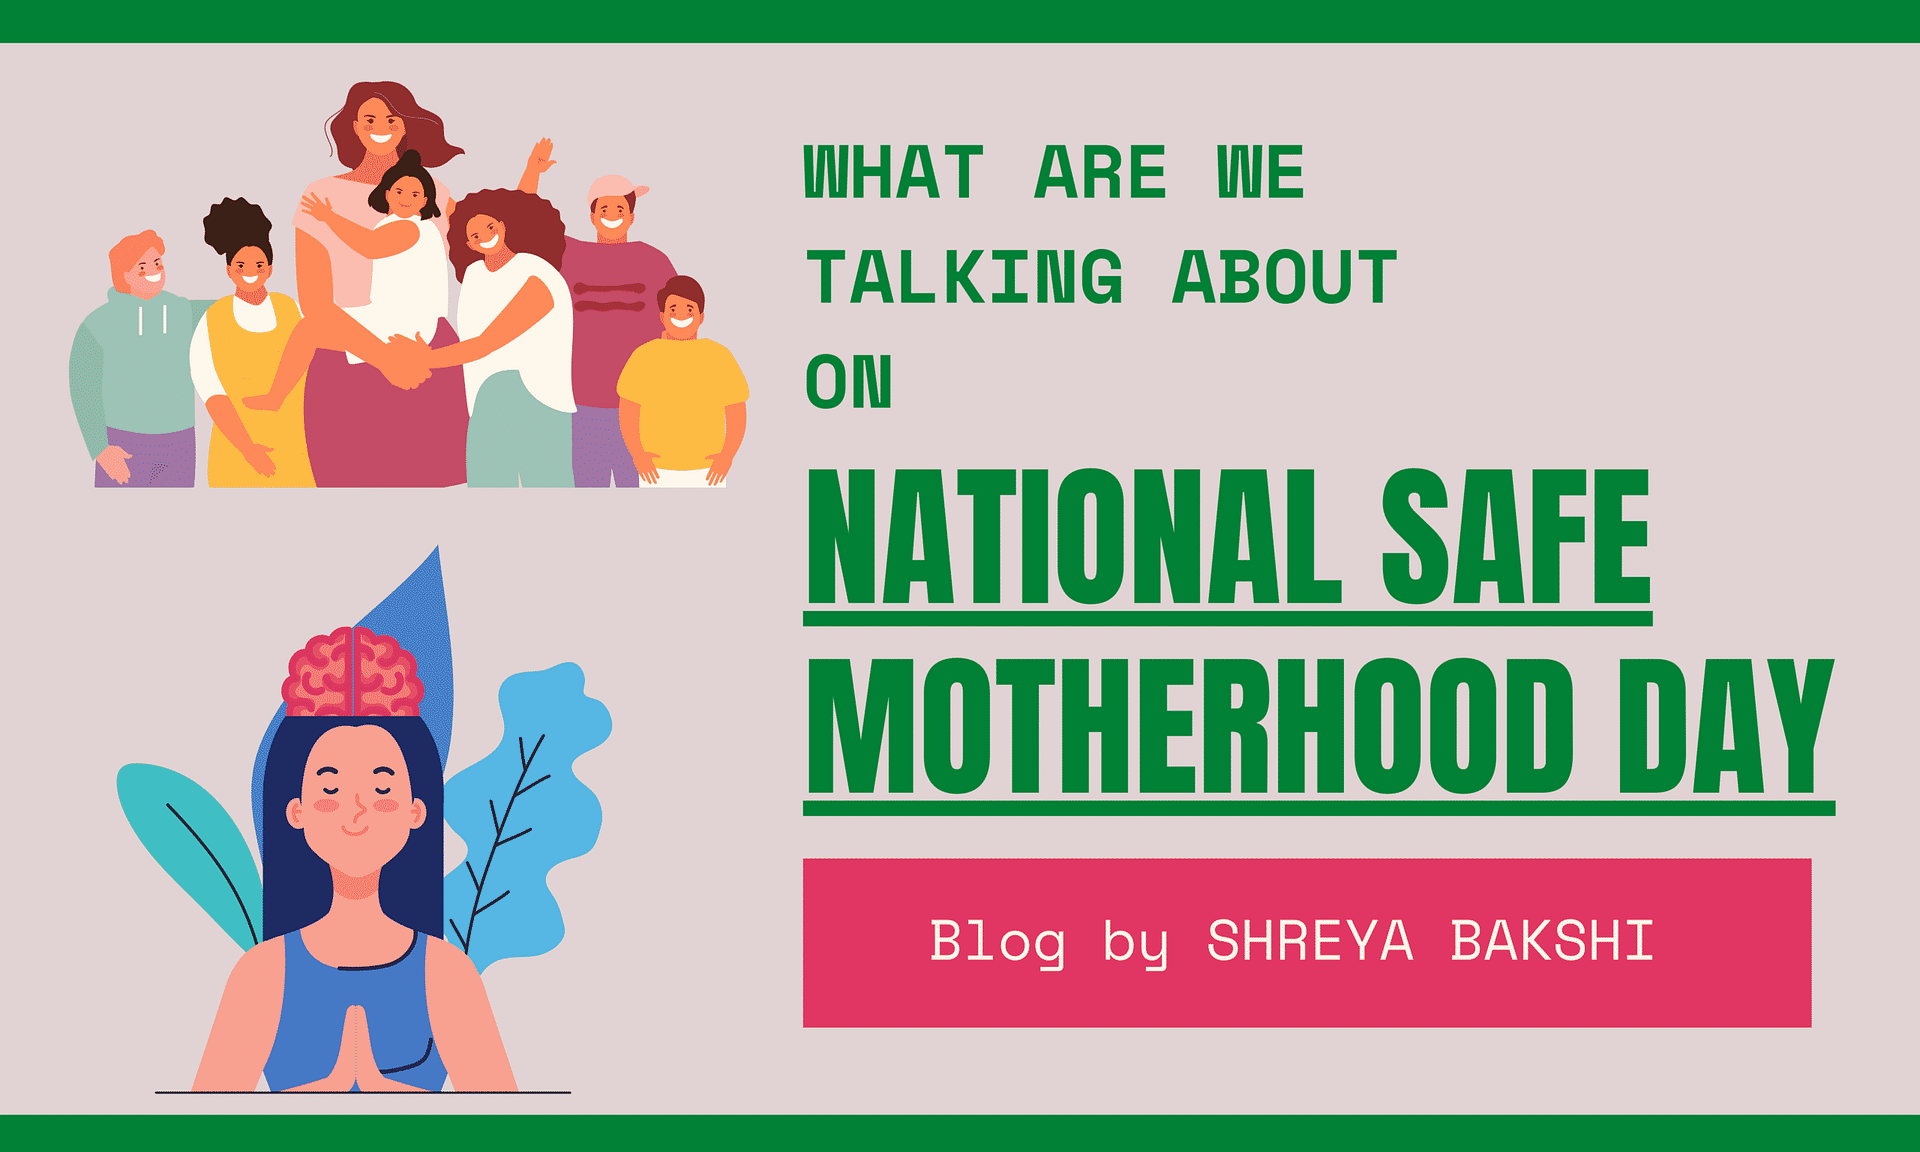 What are we talking about this NATIONAL SAFE MOTHERHOOD DAY 2021?